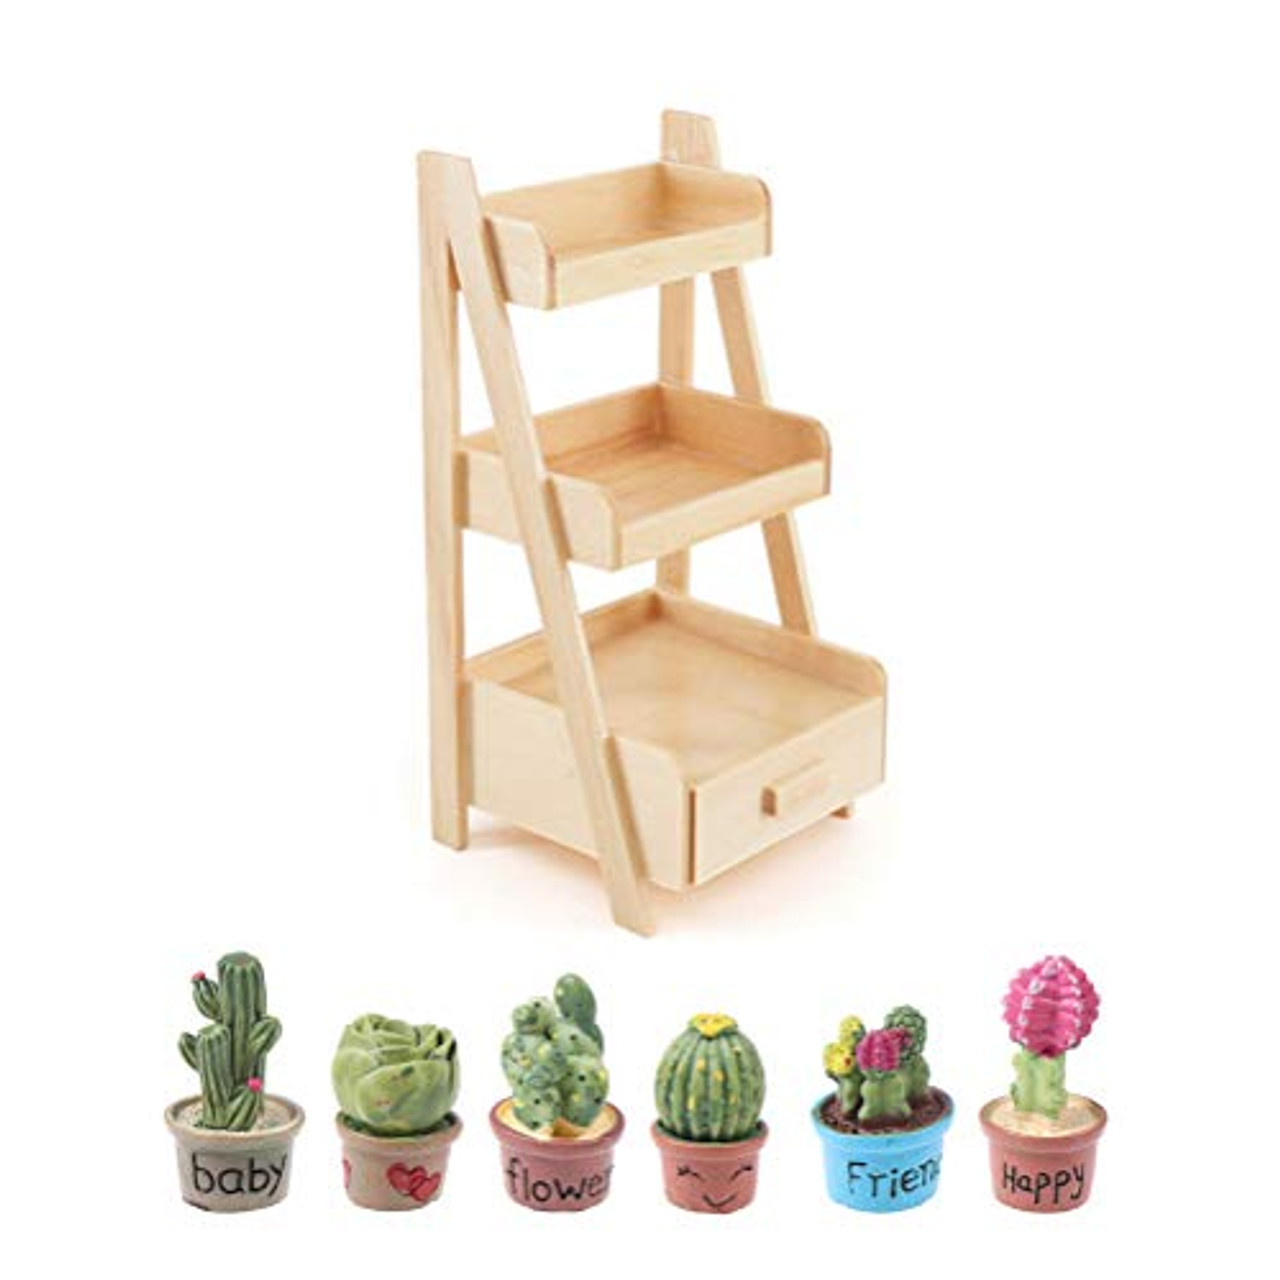 F Haomian Doll House Simulation Flower Stand 1:12 Scale Dollhouse Mini Wood Shelf Flower Stand Doll House Furniture Model Toy Fairy Garden Accessory